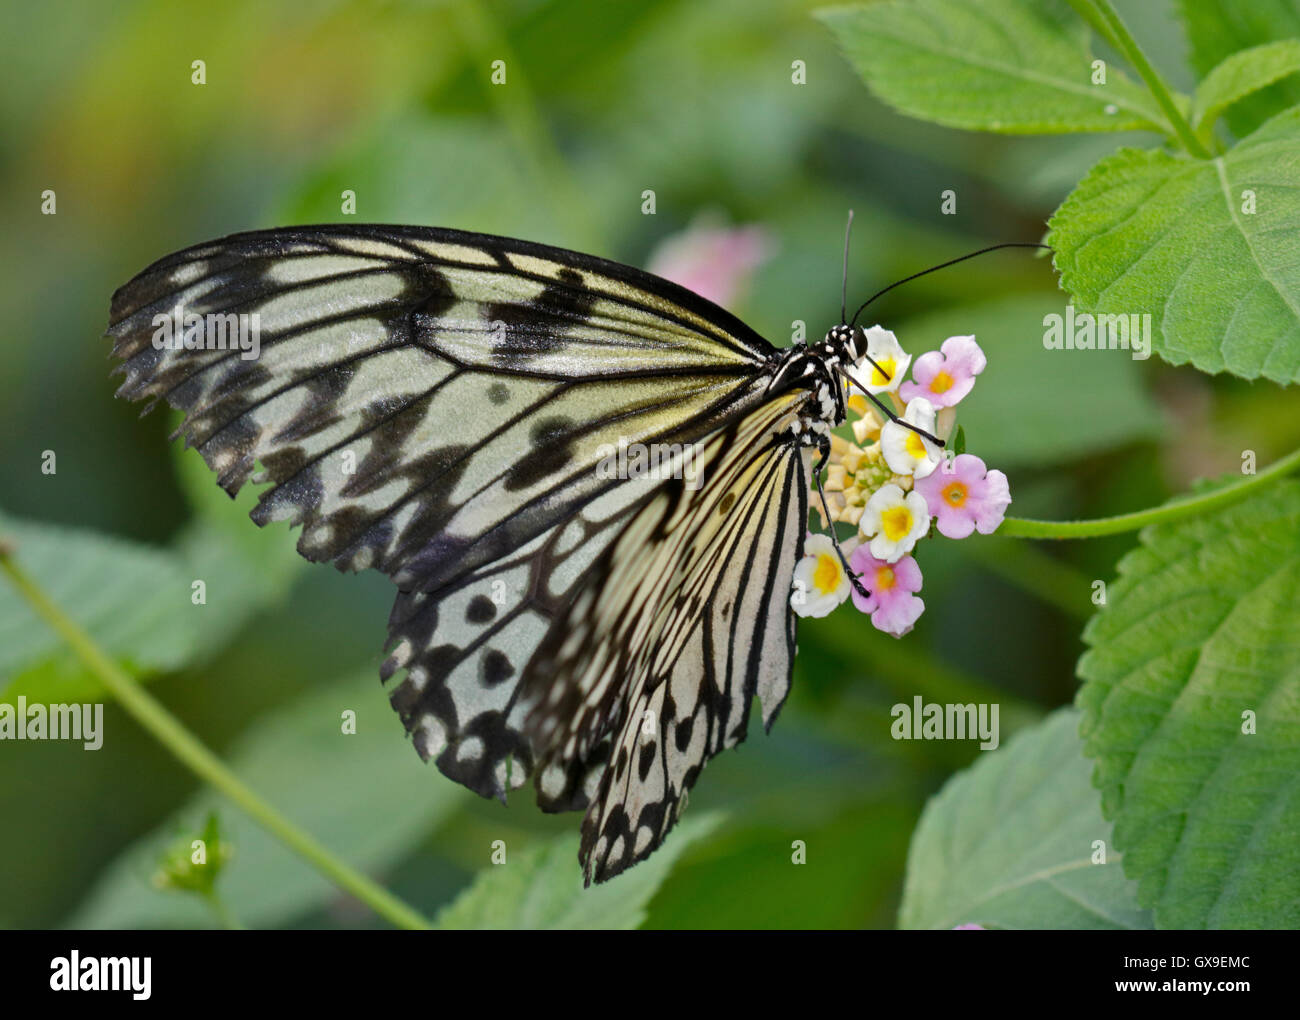 White Tree Nymph Butterfly (idea leuconoe) on Lantana Flower - Stock Image